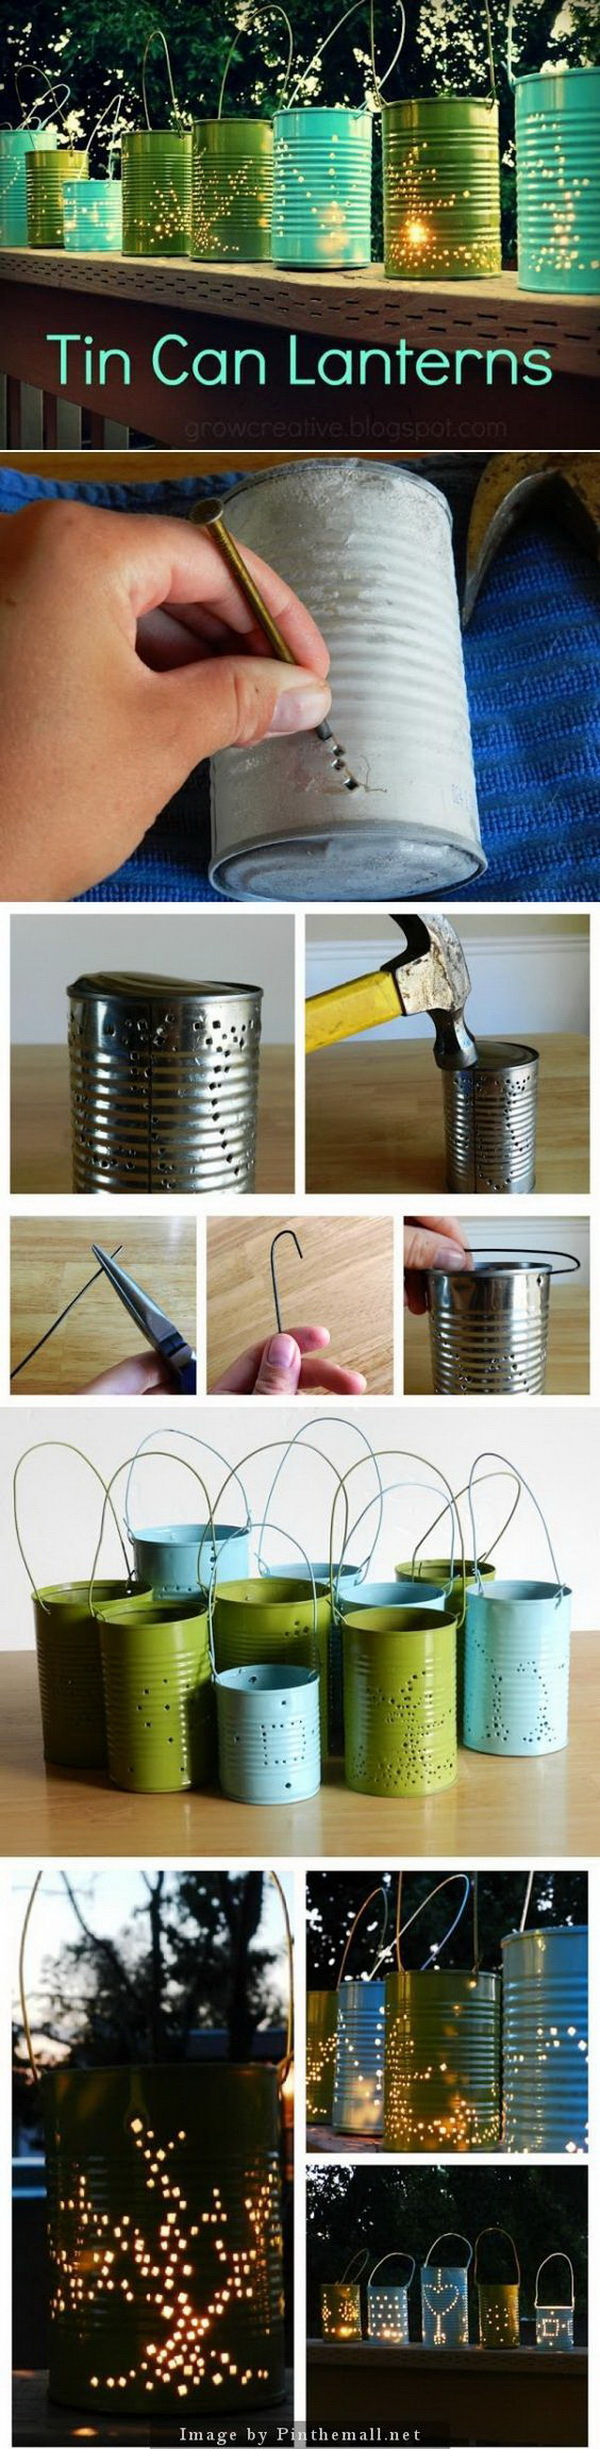 DIY Tin Can Lanterns. This beautiful lantern style lamp can be easily made out of tin cans and spray paints.